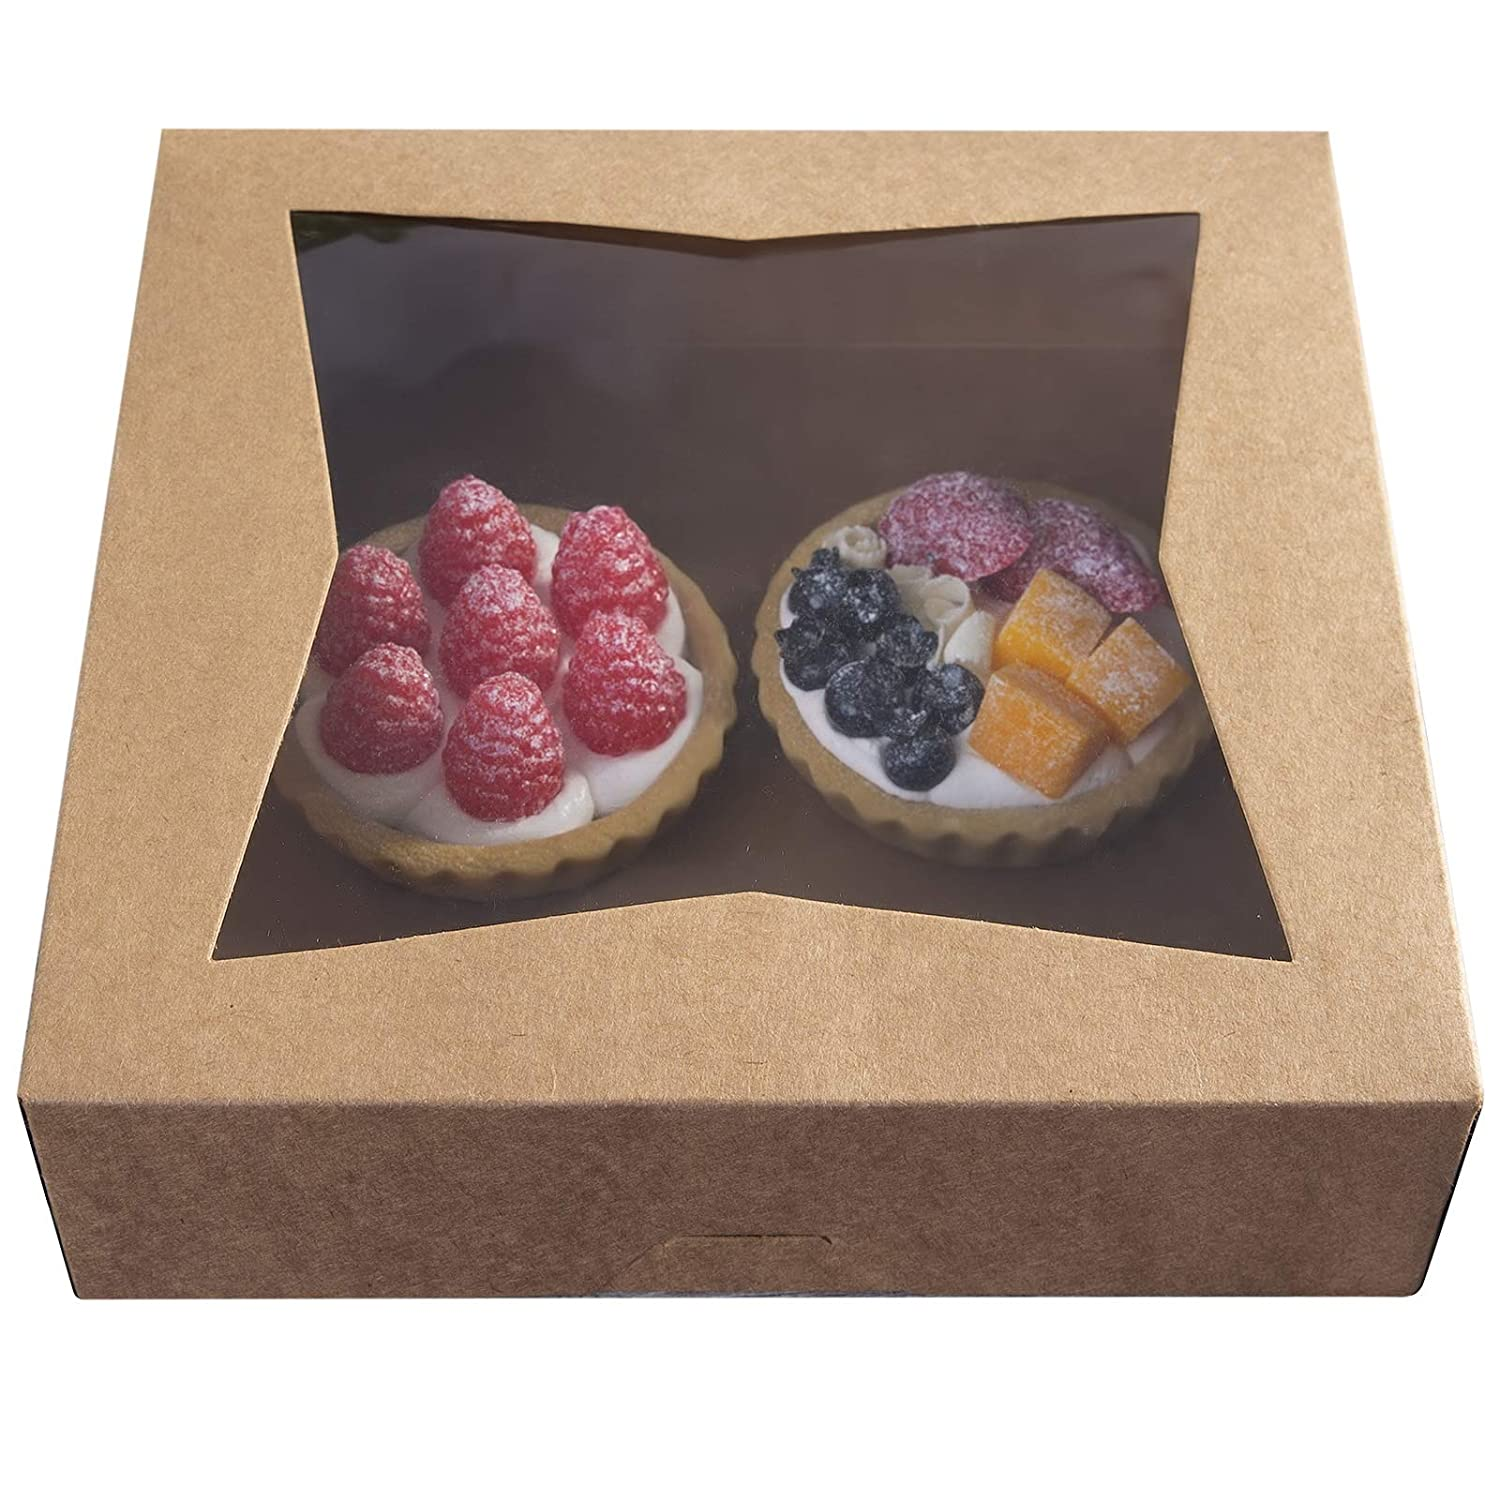 [15pcs]9Brown Cookie Bakery Boxes,Large Kraft Paperboard Pie Boxes with Auto-Popup Window Disposable Pastries Box 9x9x2.5inch,Pack of 15